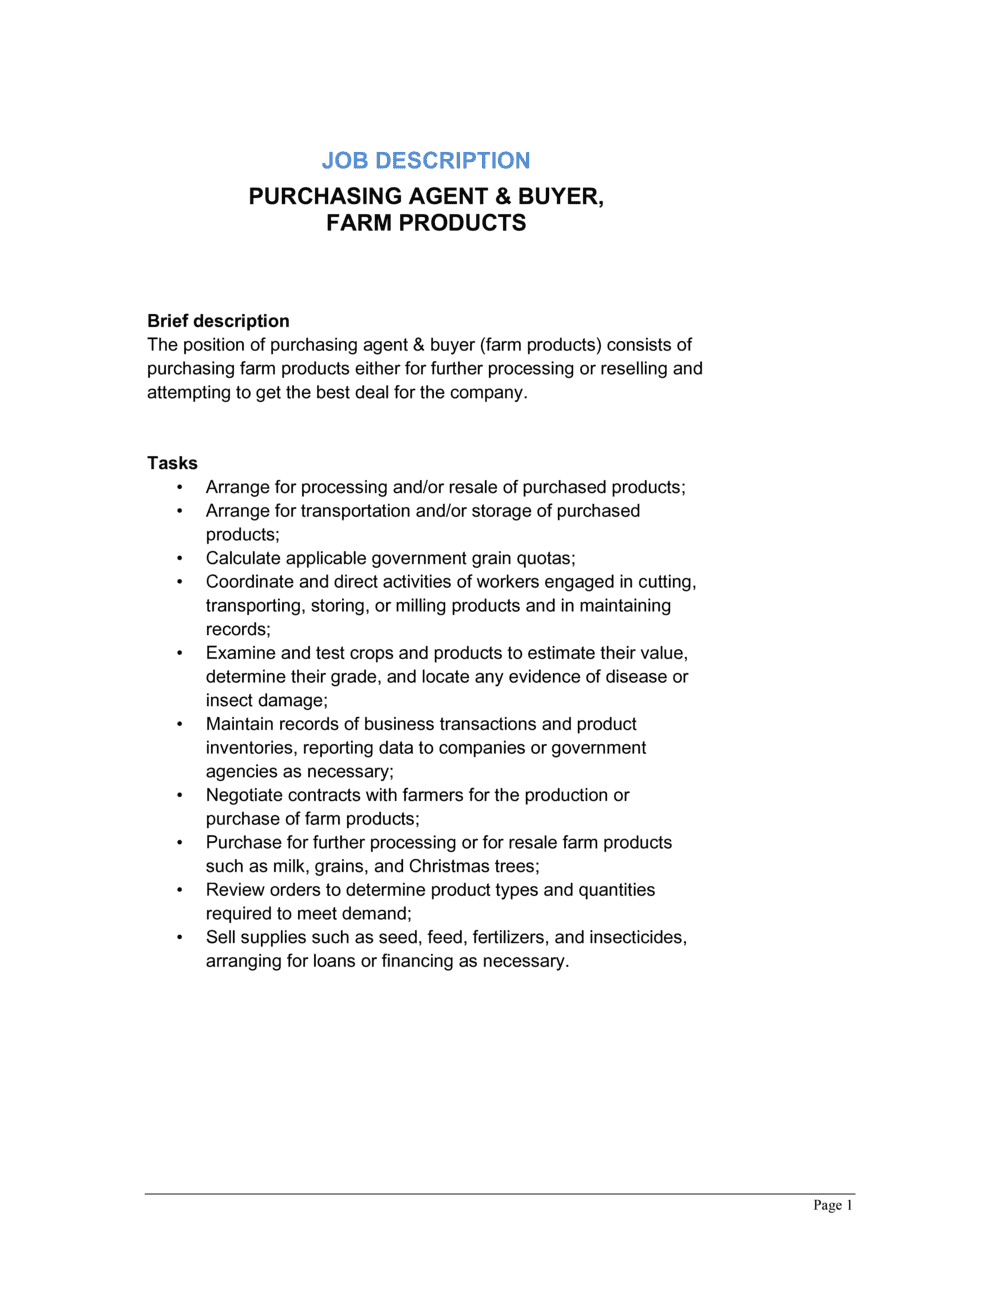 Business-in-a-Box's Purchasing Agent & Buyer Farm Products Job Description Template